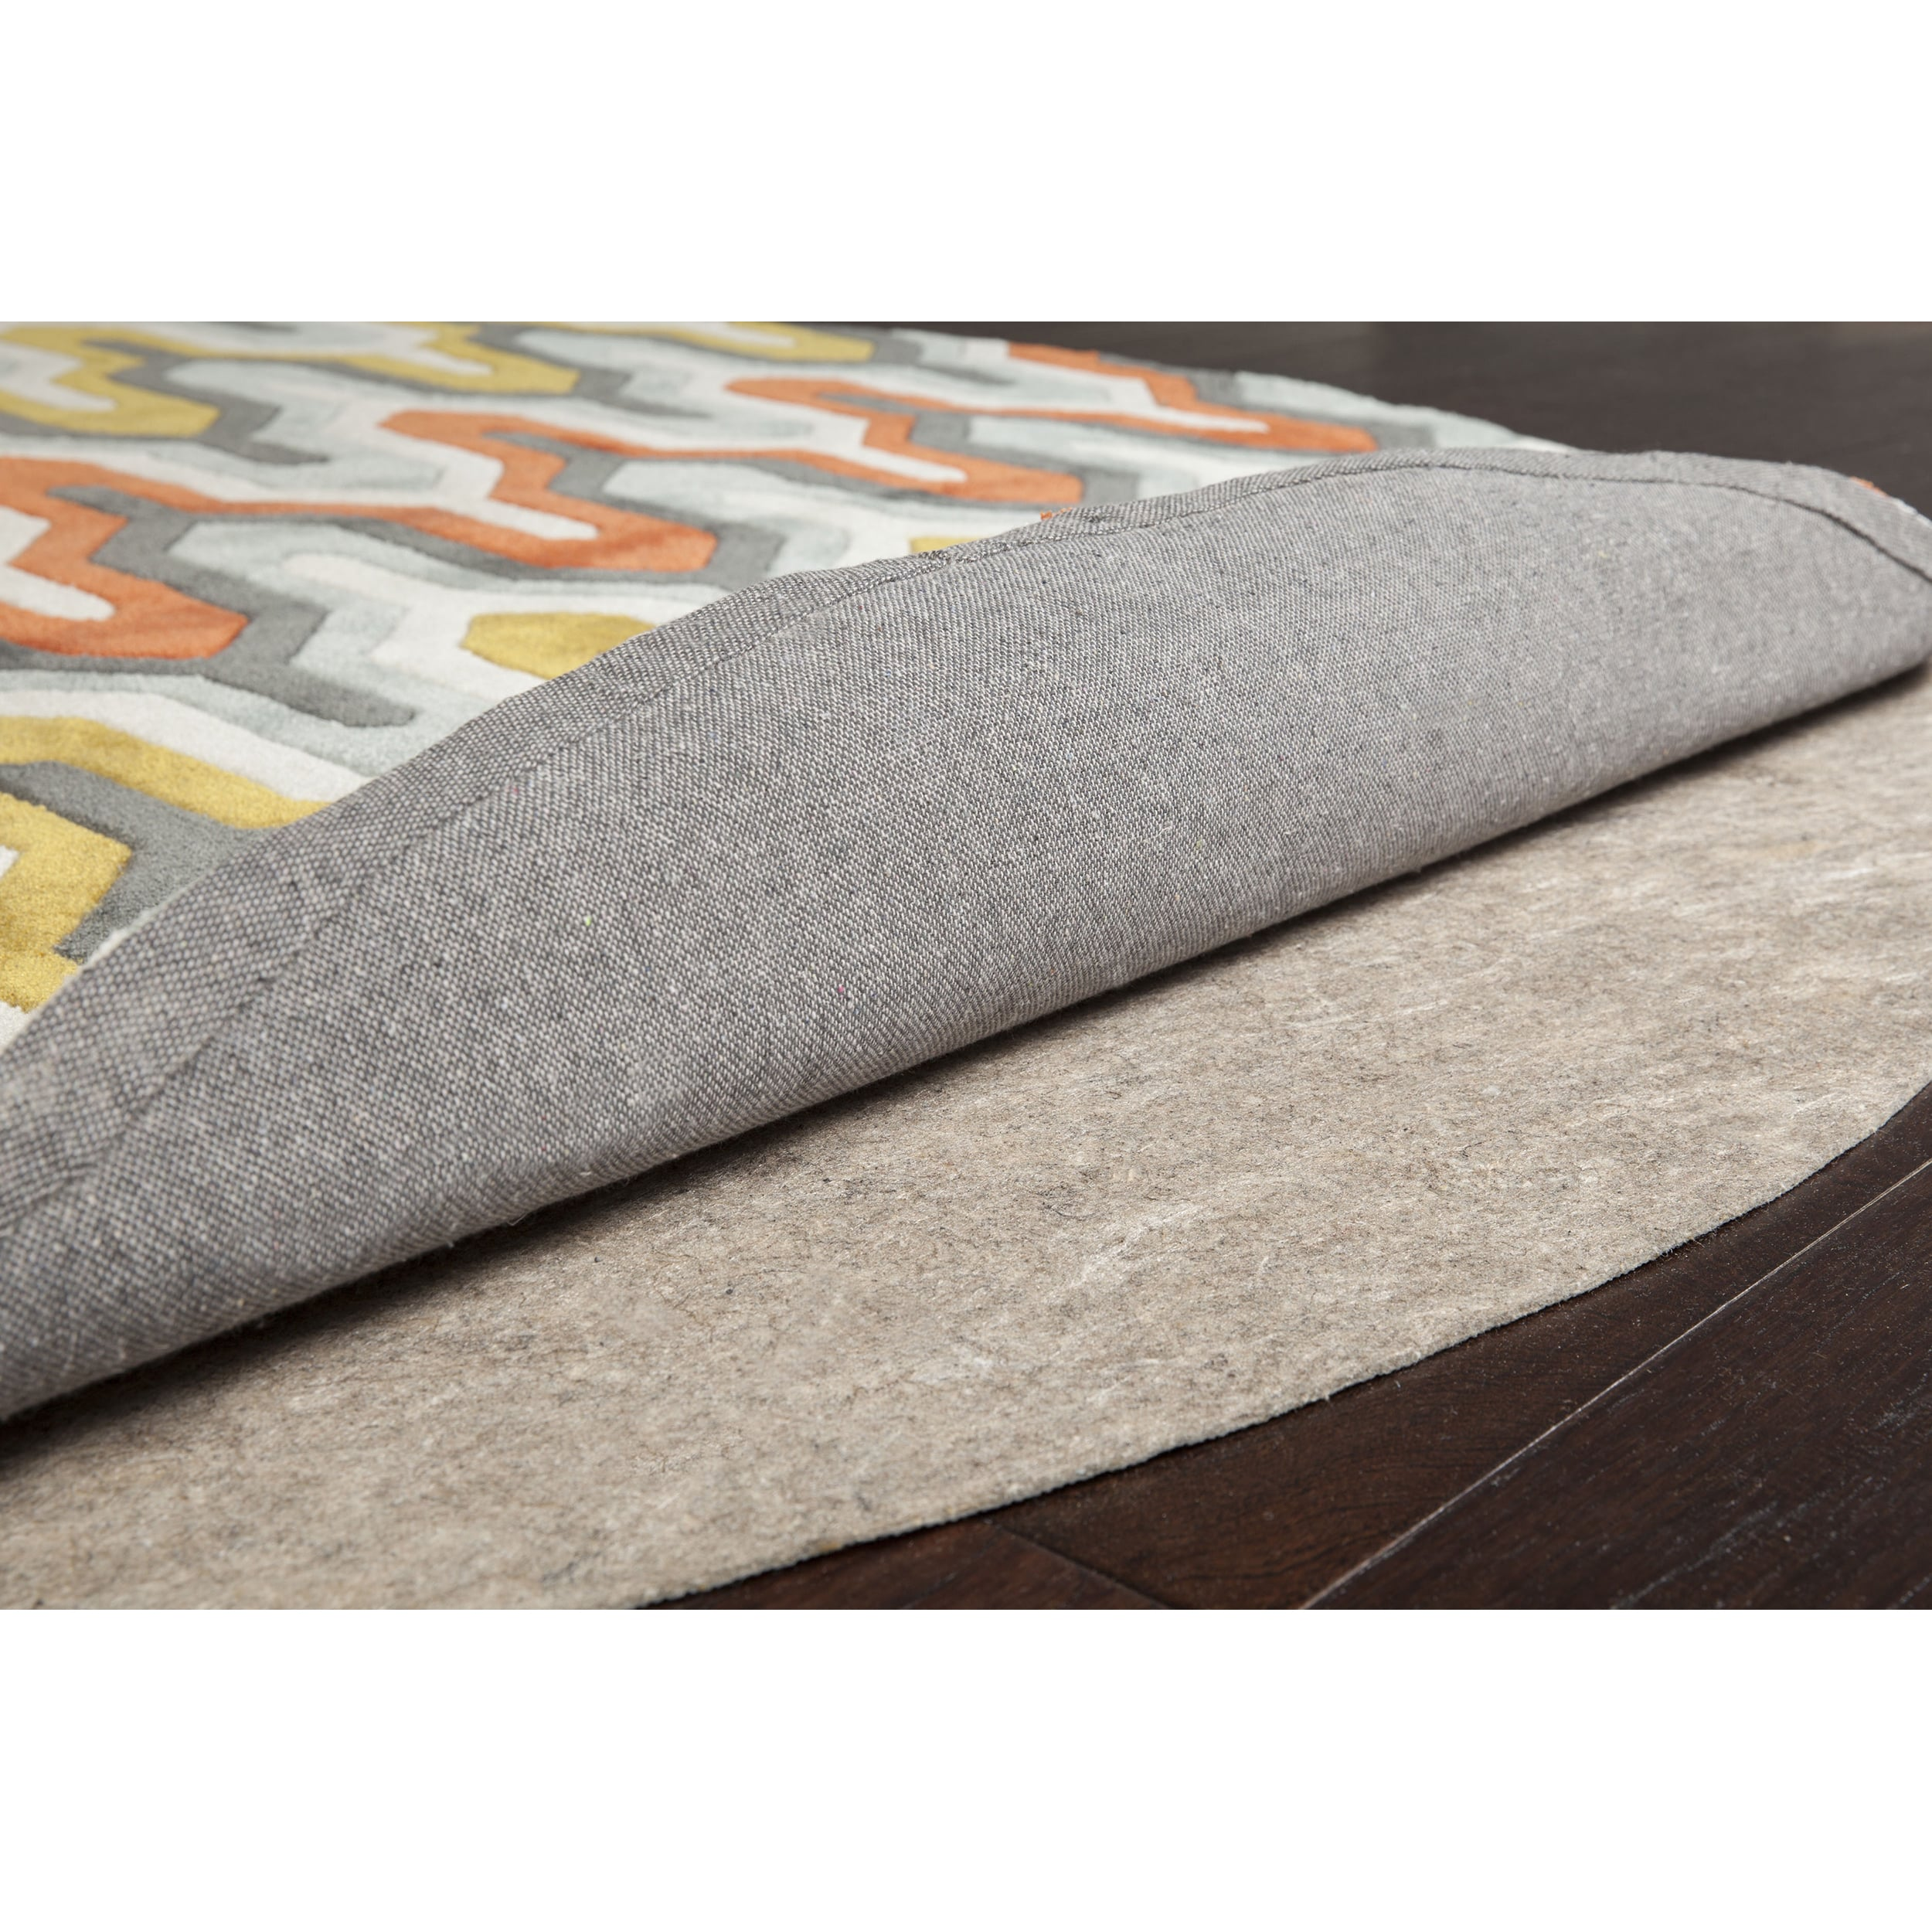 Ultra Premium Felted Reversible Dual Surface Non Slip Rug Pad On Free Shipping Orders Over 45 Com 8973540